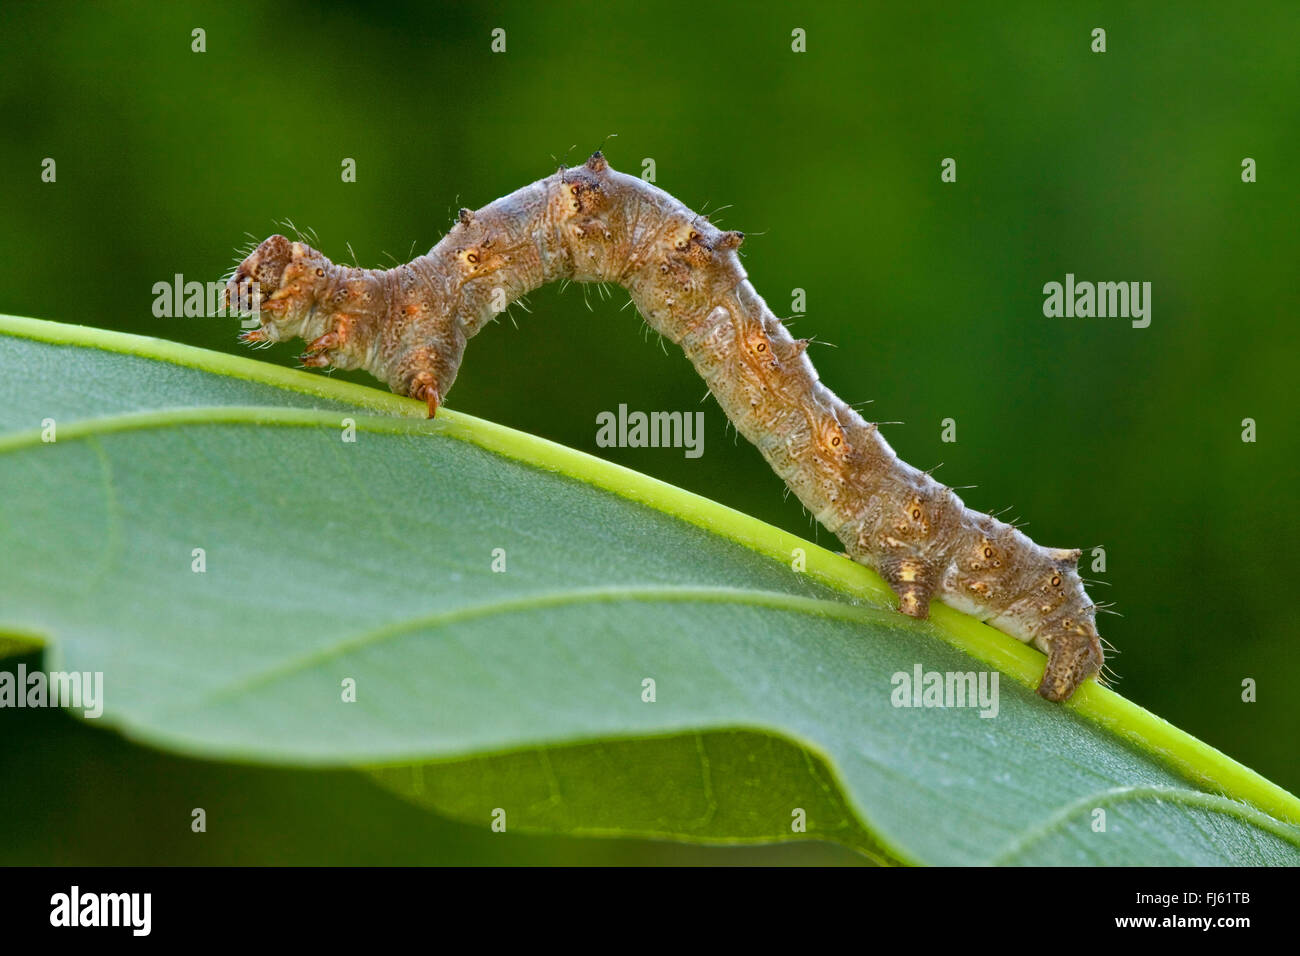 Pale brindled beauty (Apocheima pilosaria, Phigalia pilosaria), caterpillar creeps on a leaf, Germany - Stock Image